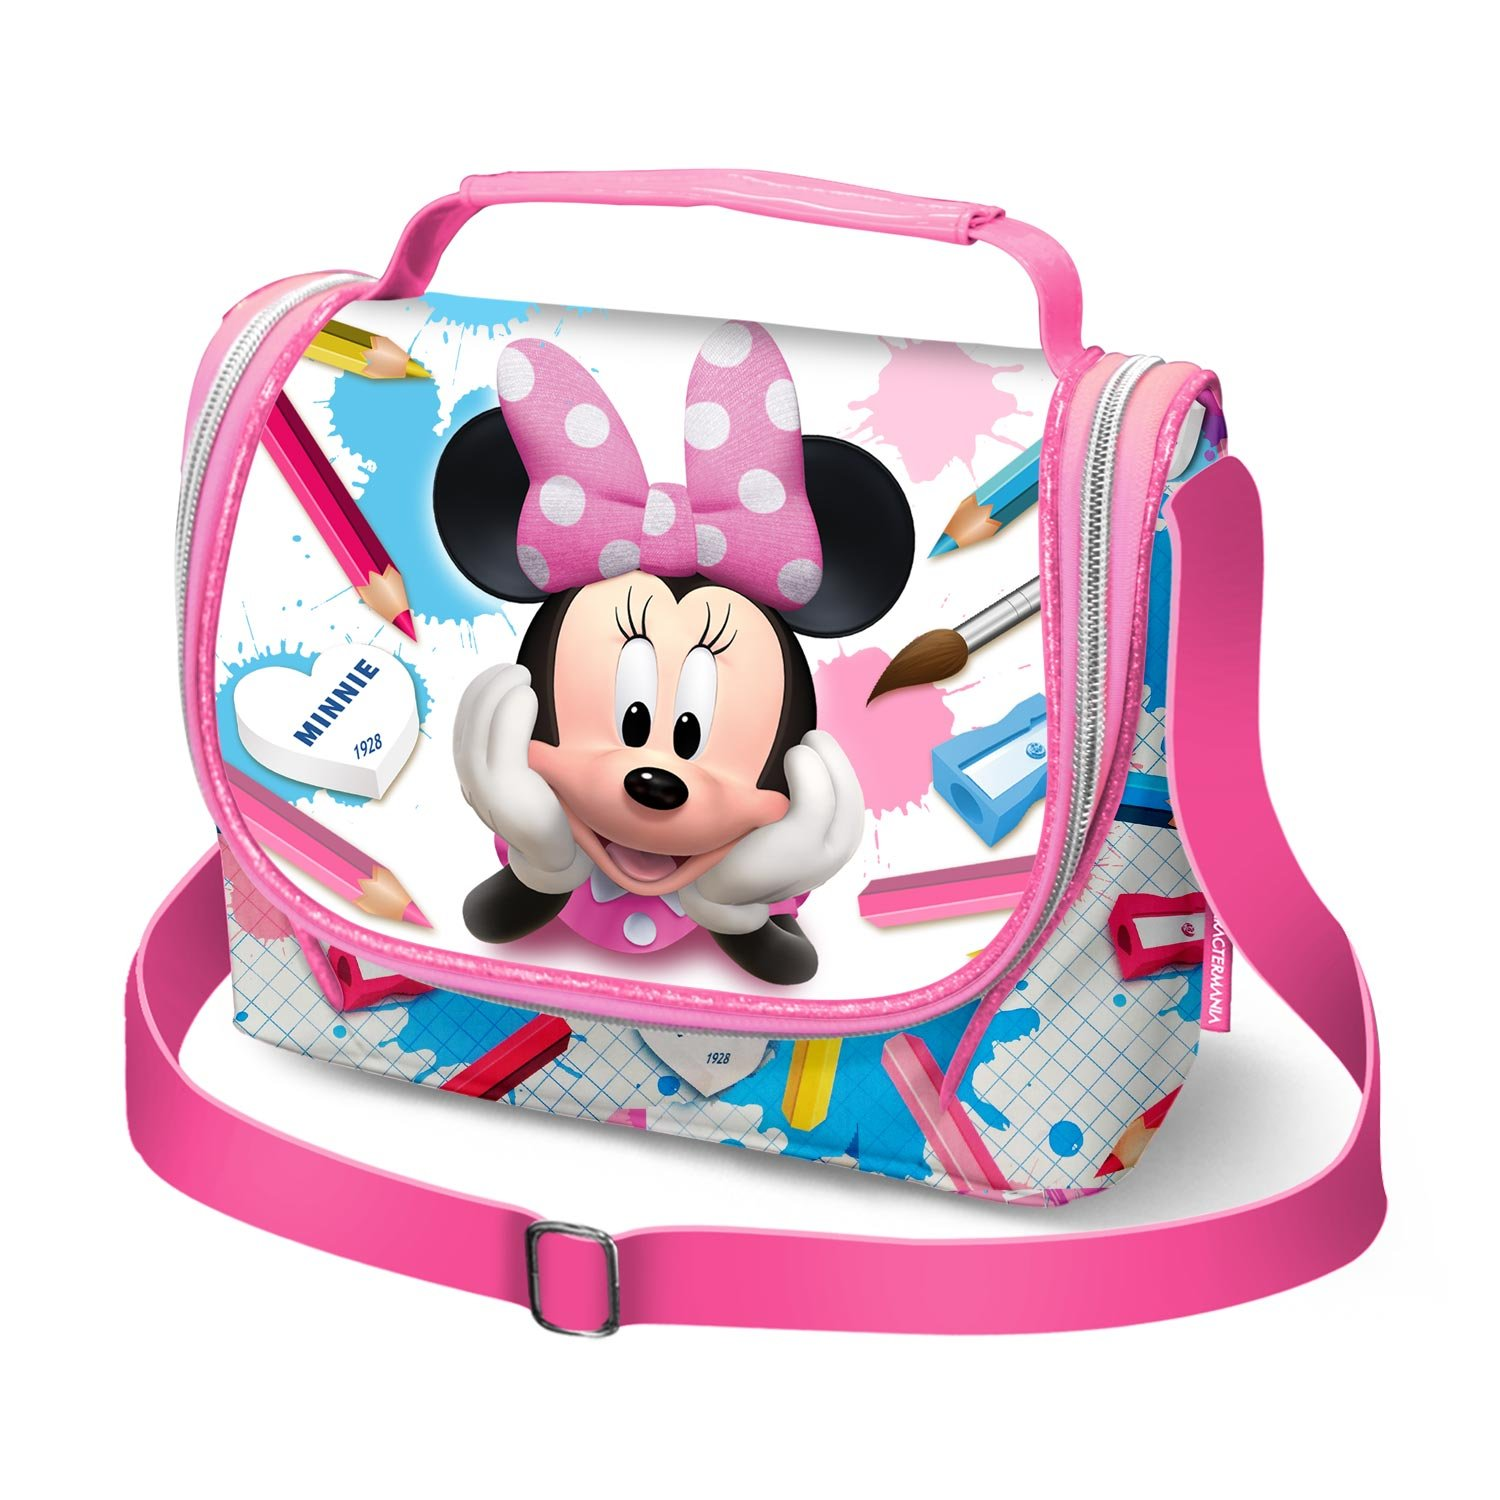 Karactermania Minnie Mouse School-Girls Lunch Bag Cartable, 24 cm, Rose (Pink) 37706